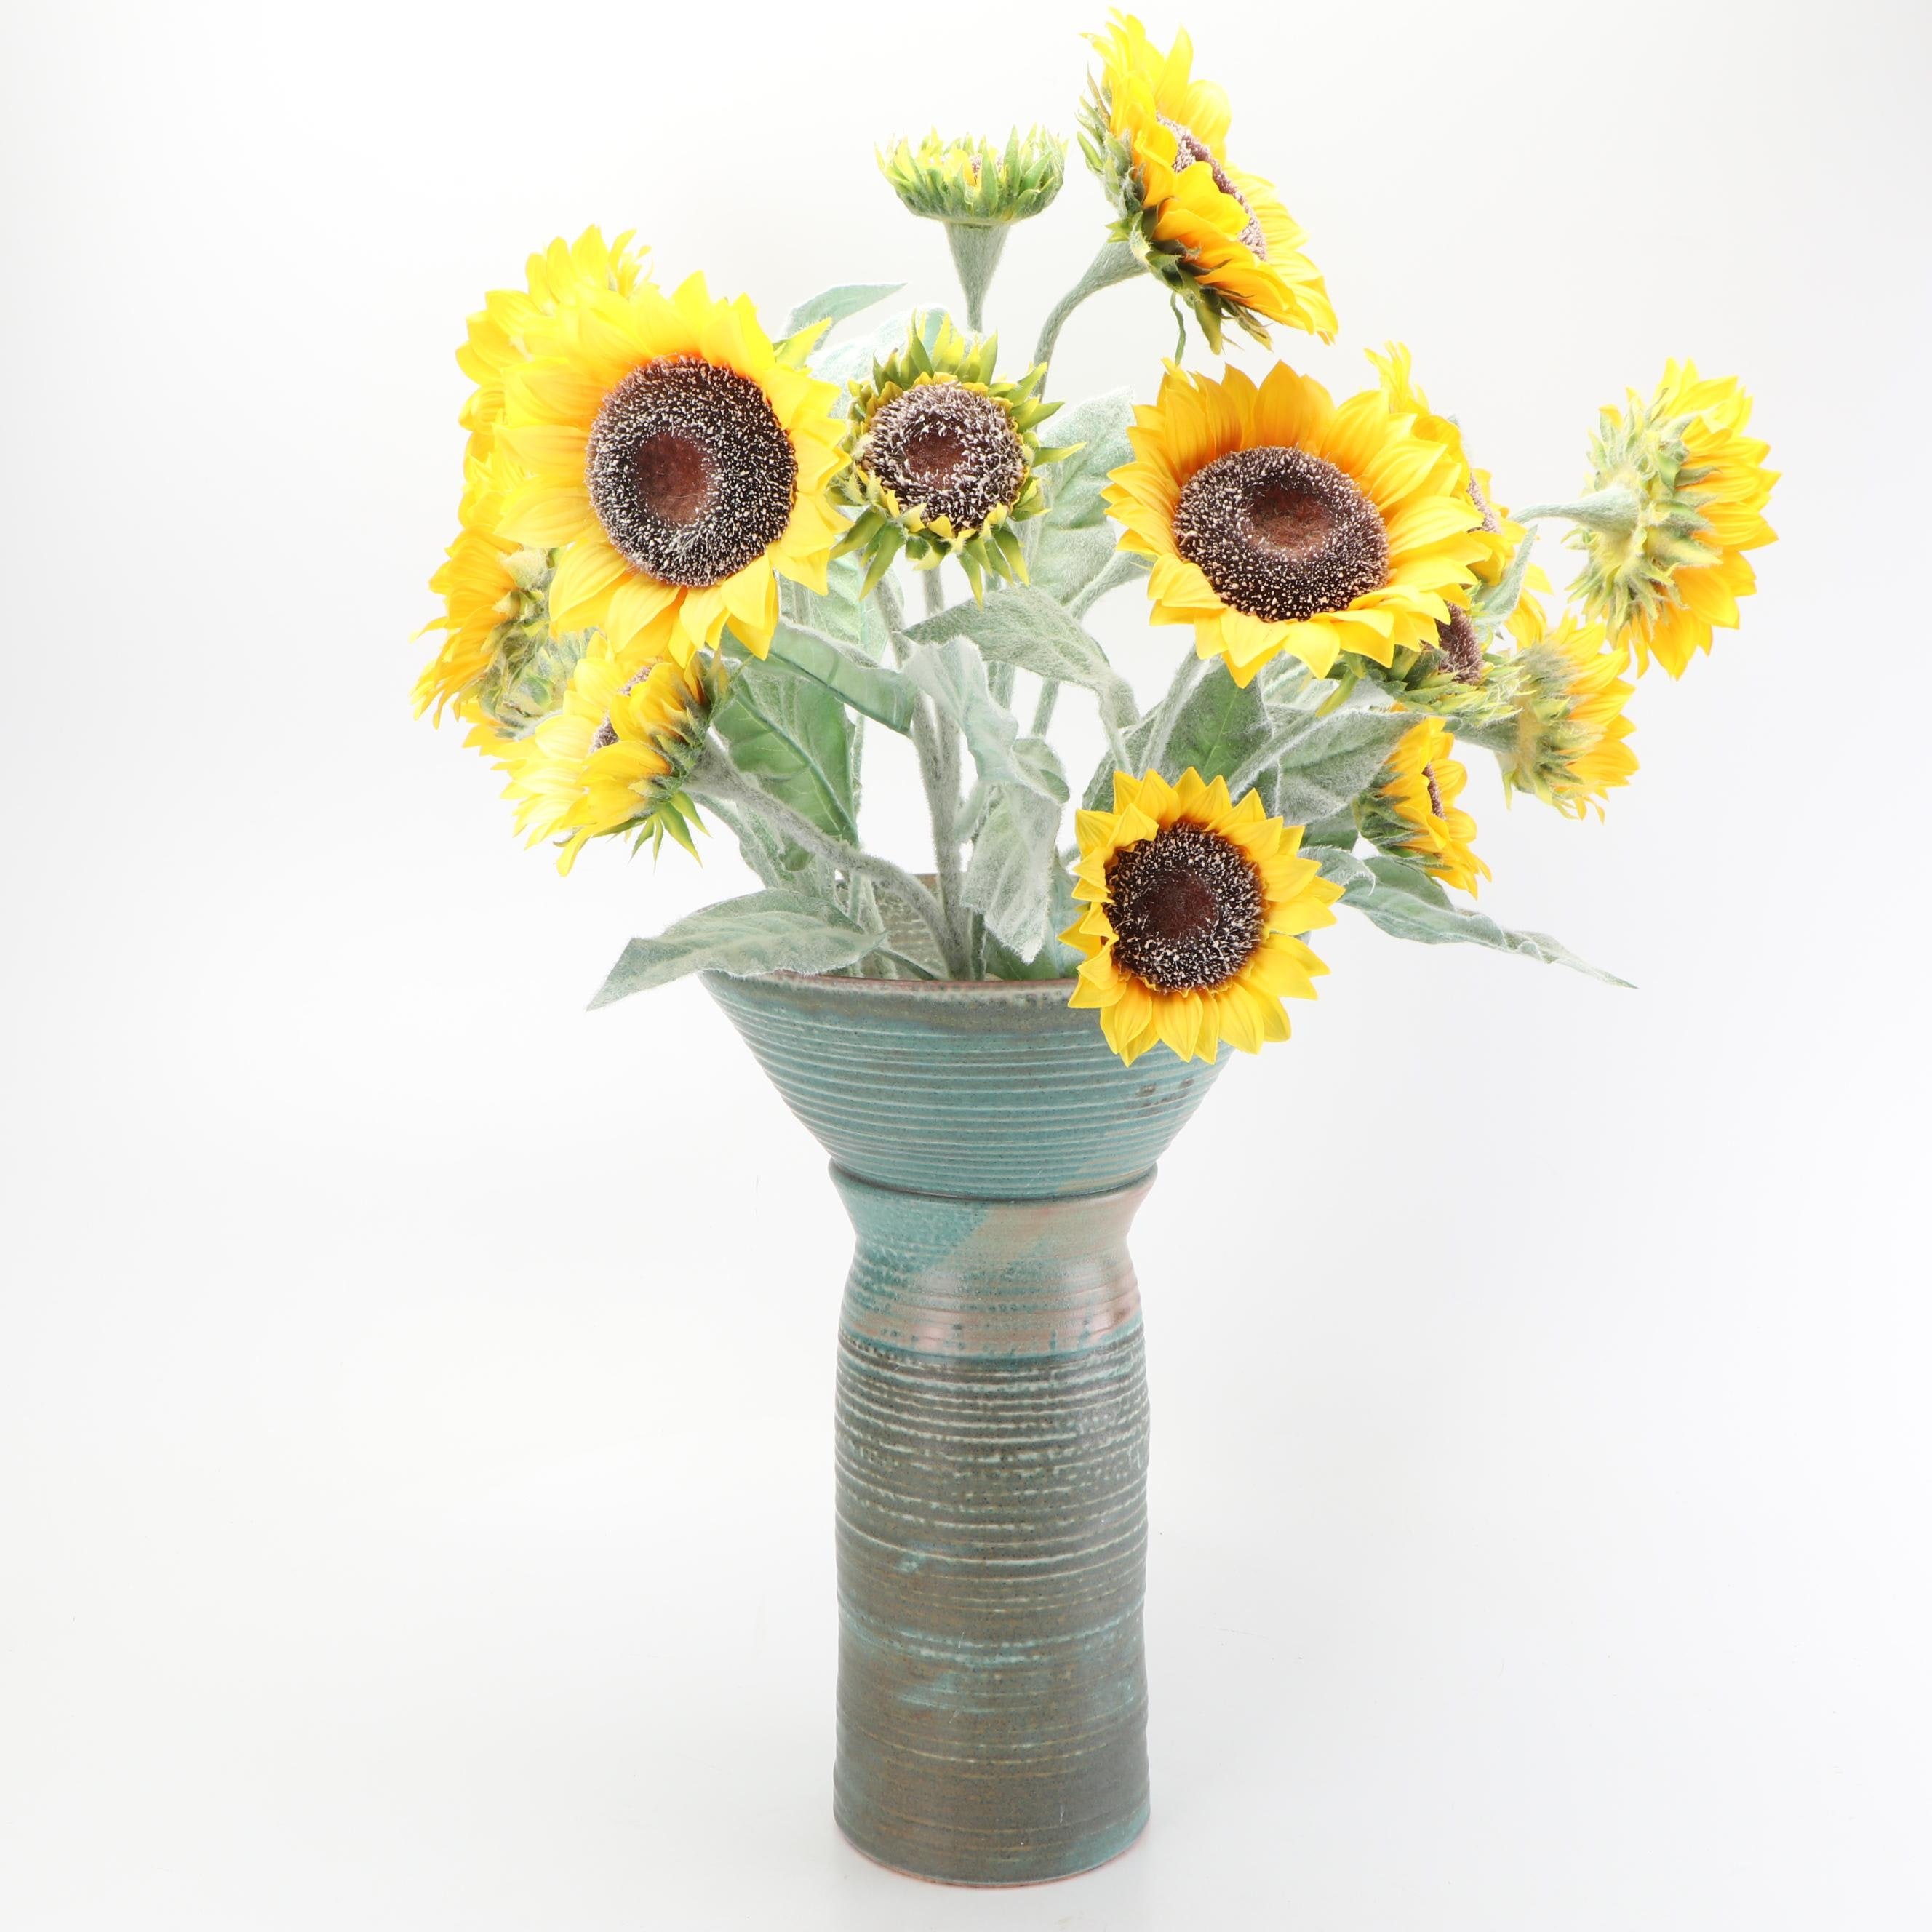 Leah Leach Thrown Stoneware Vase with Faux Sunflowers